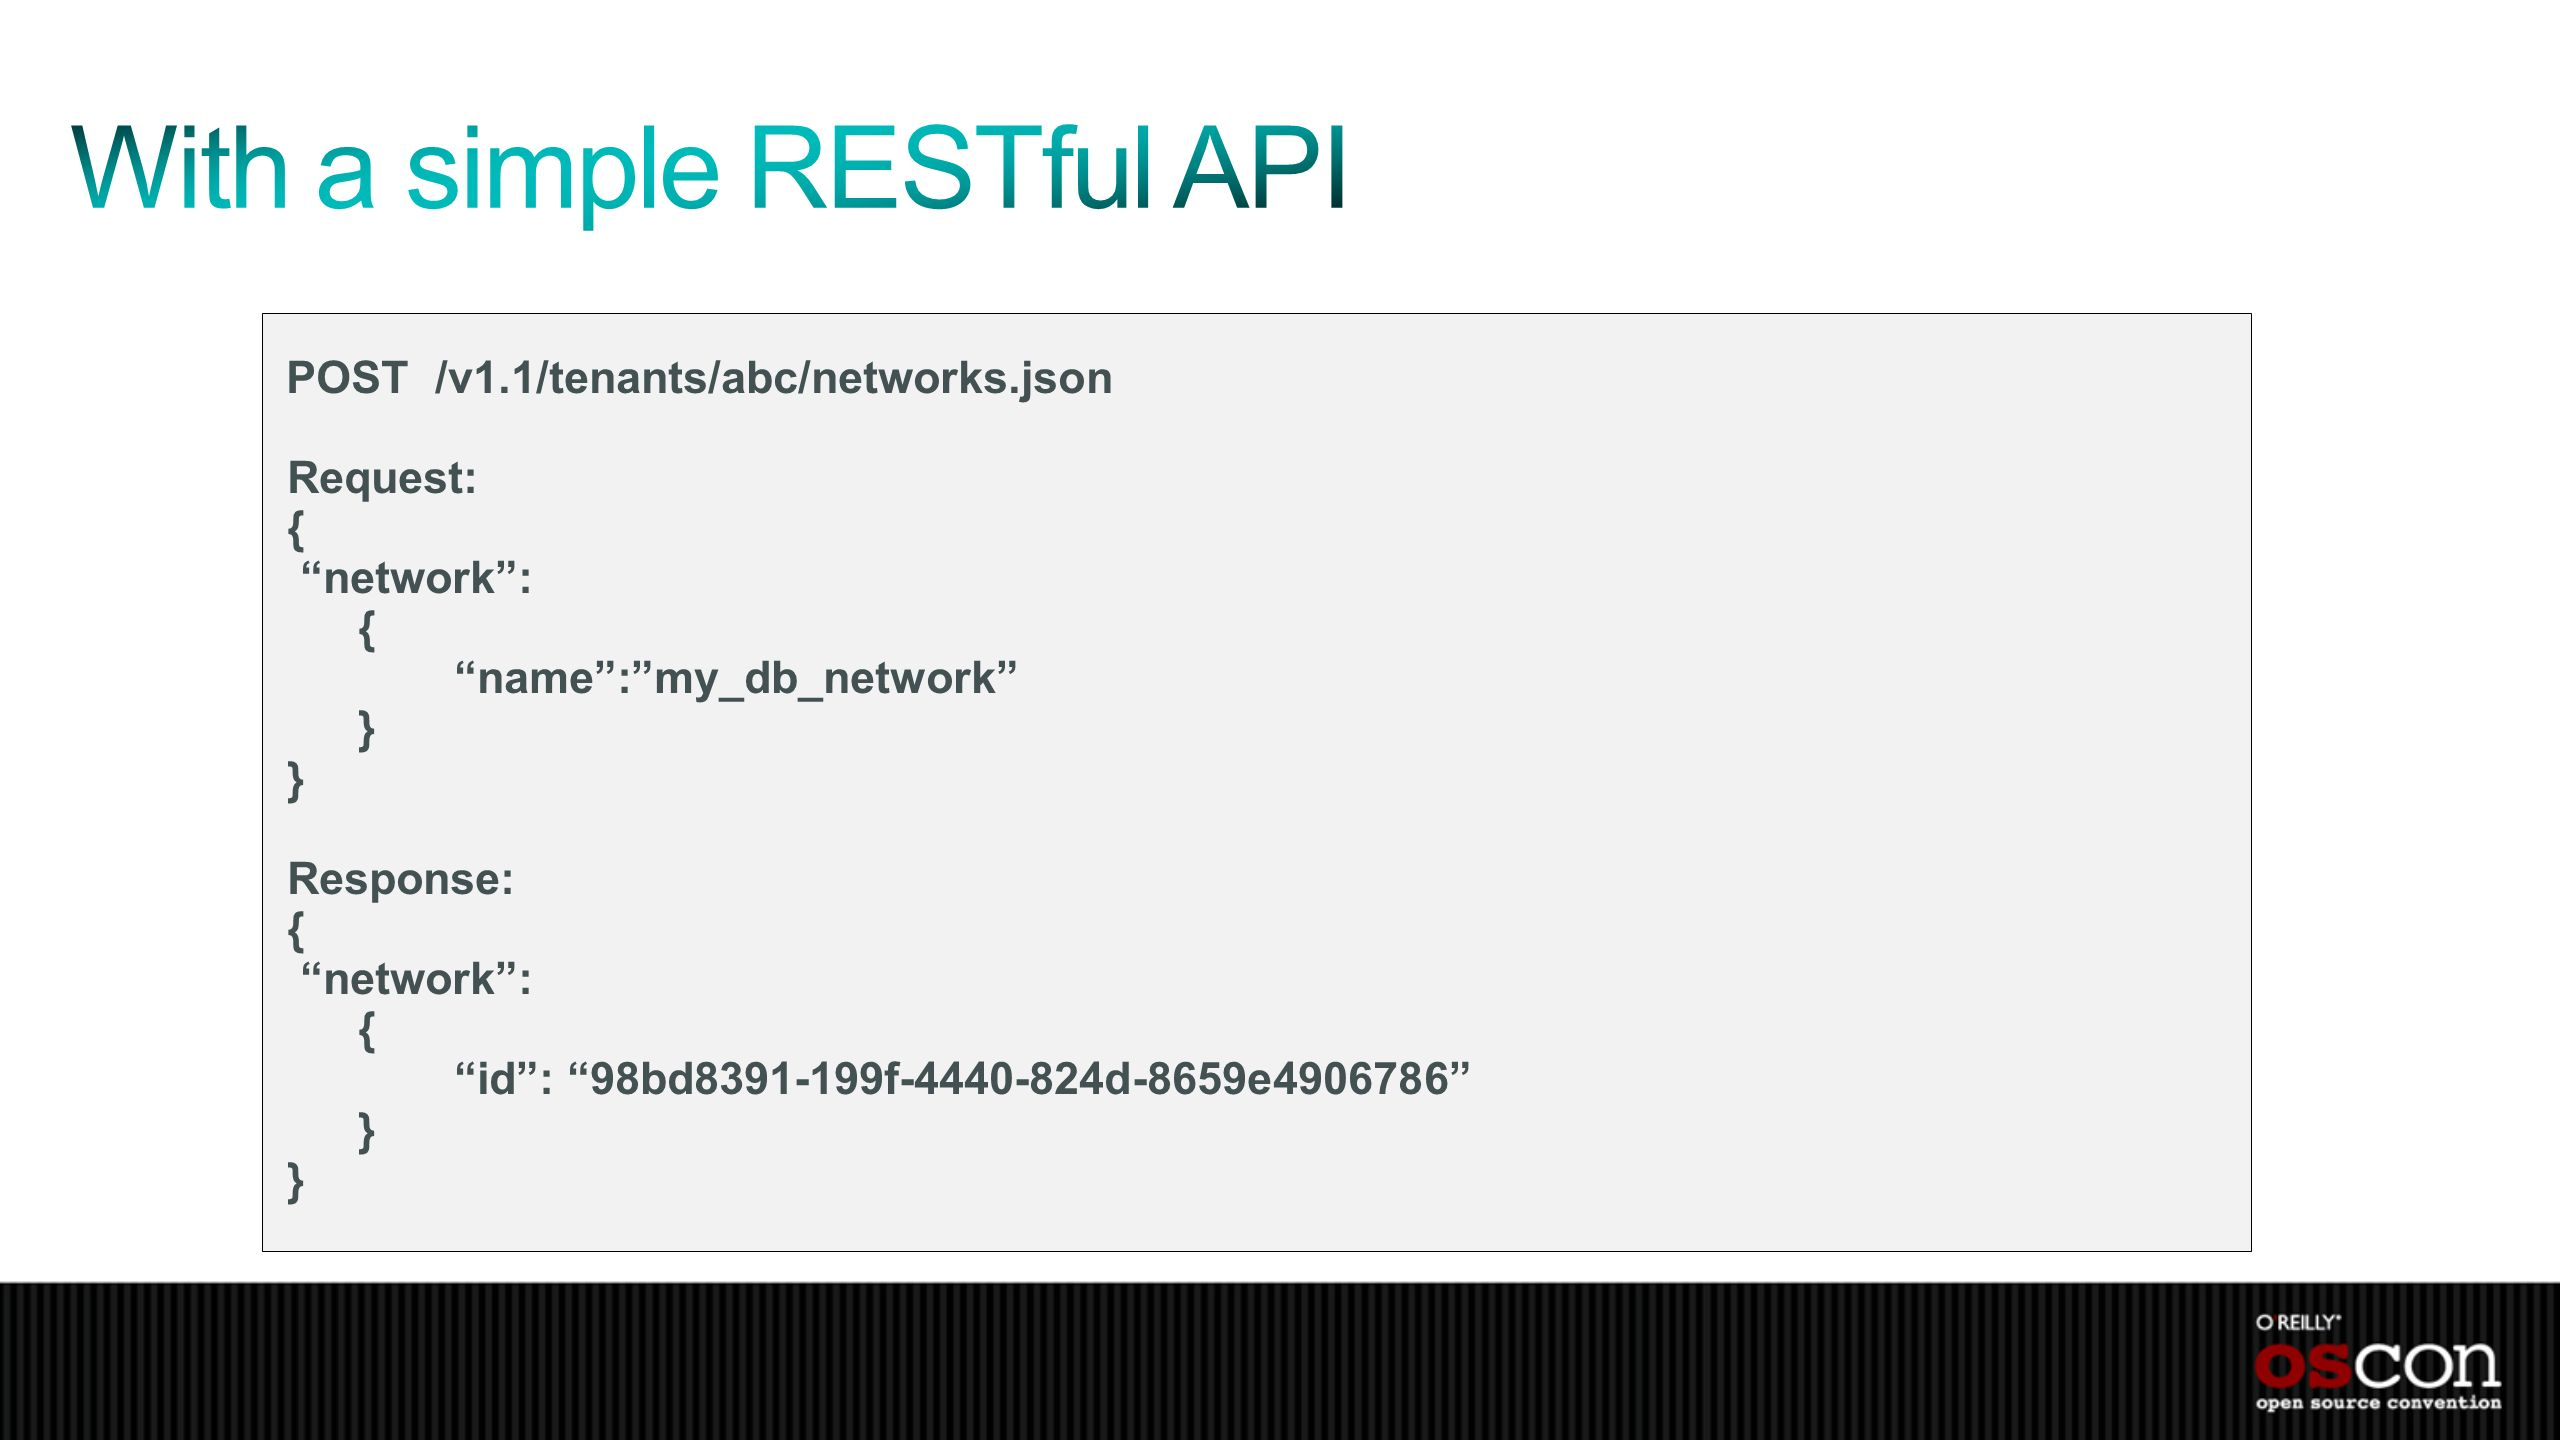 With a simple RESTful API